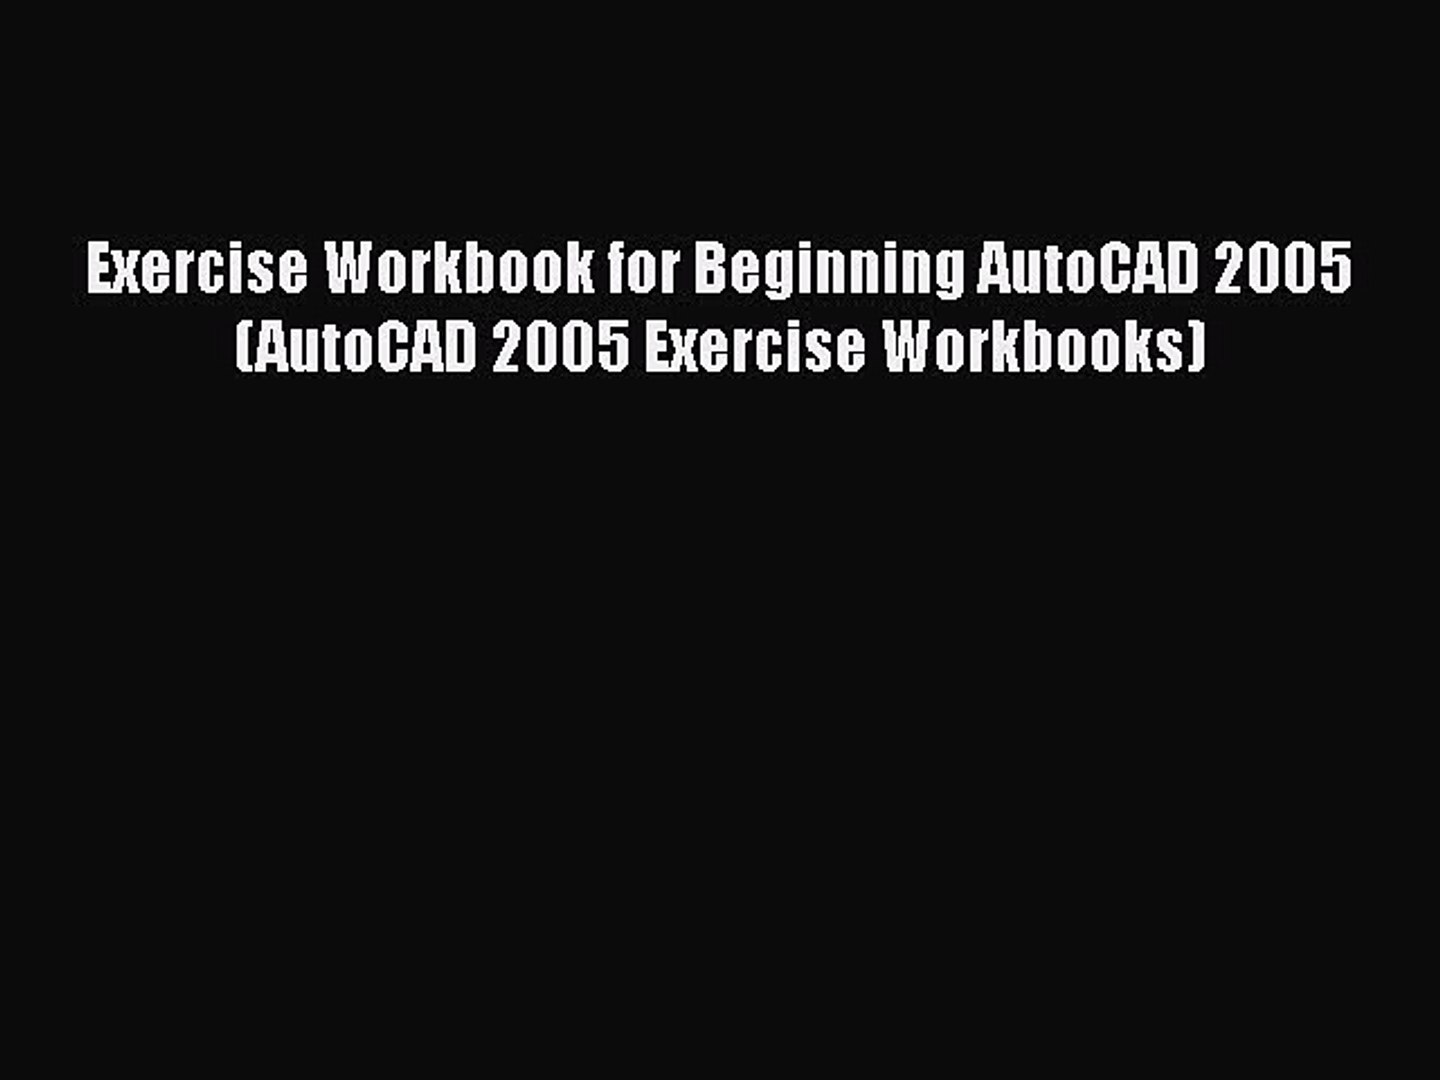 PDF Exercise Workbook for Beginning AutoCAD 2005 (AutoCAD 2005 Exercise Workbooks) Free Books